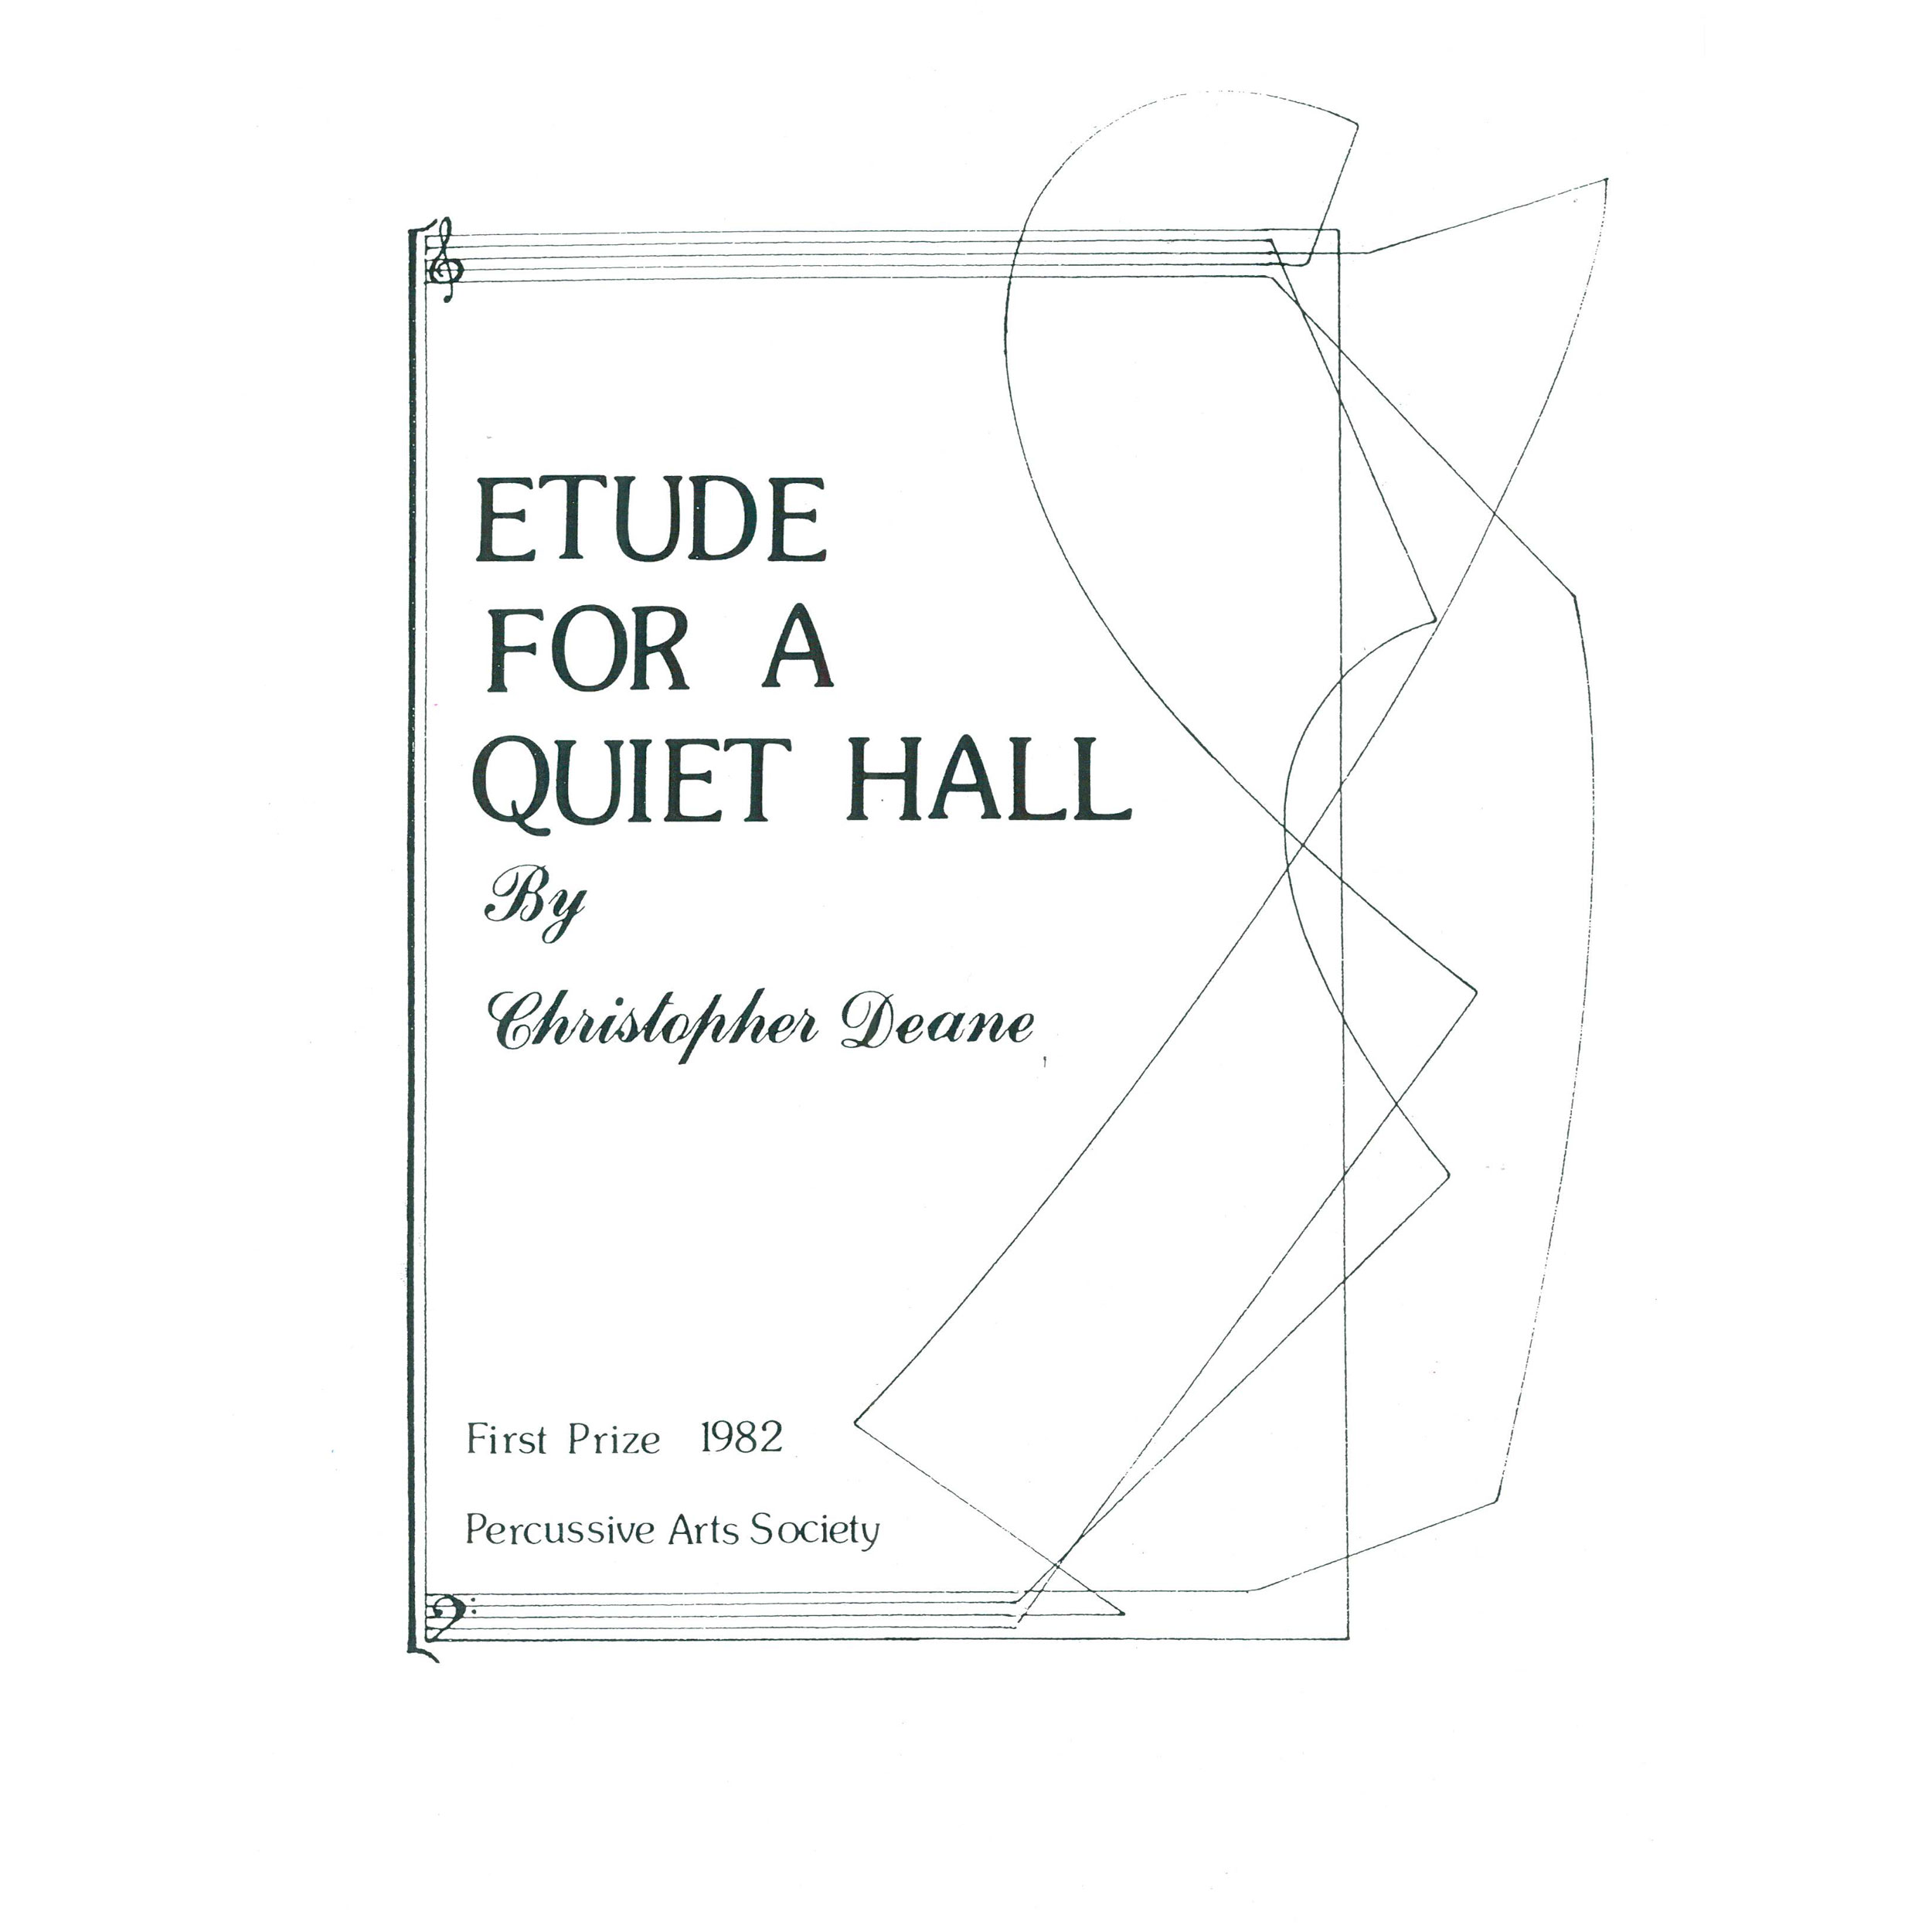 Etude for a Quiet Hall by Christopher Deane